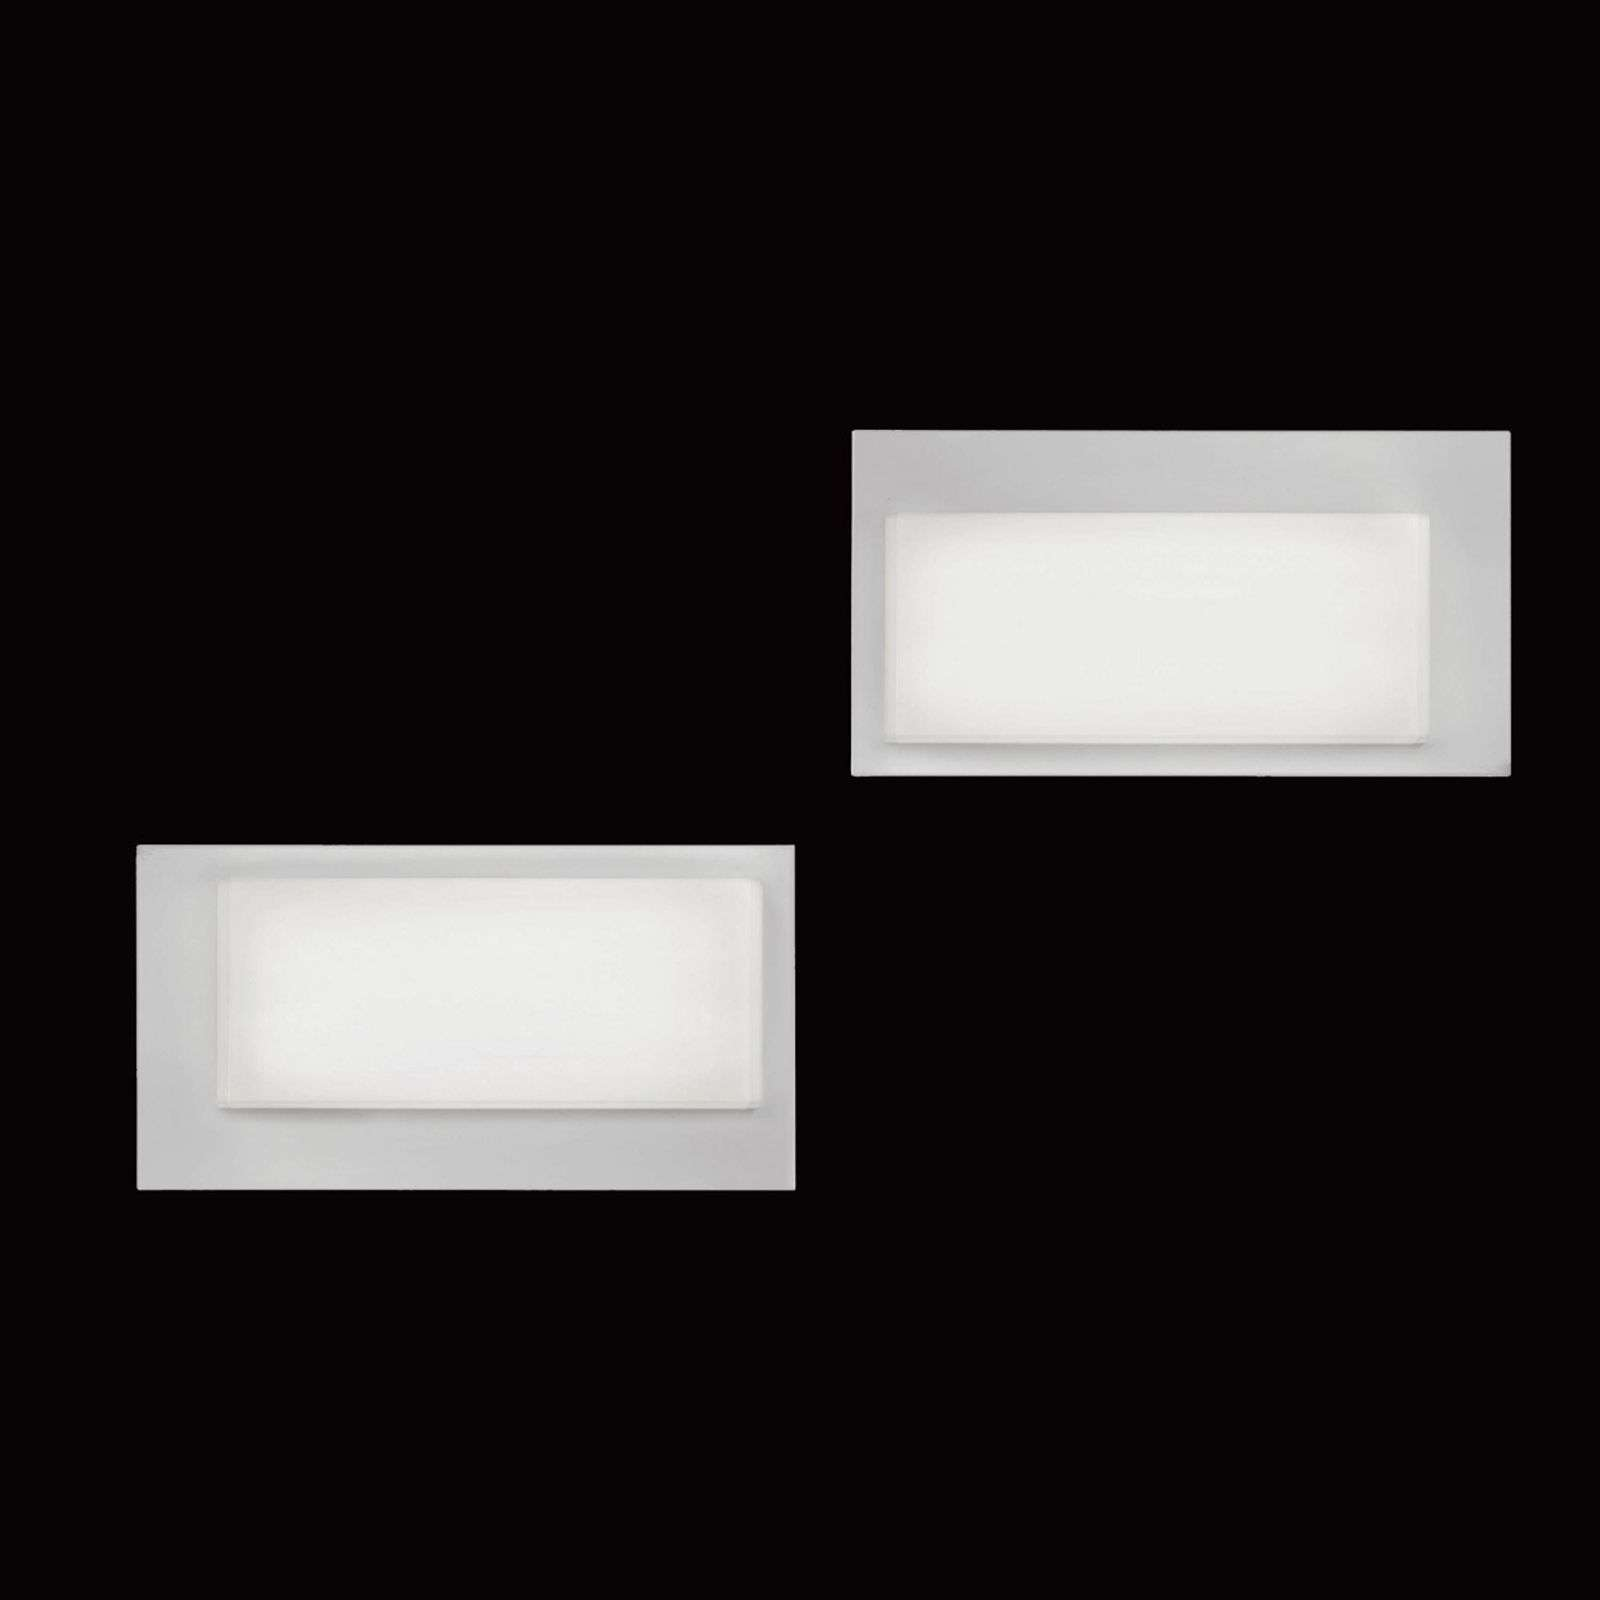 Led-wandlamp LOGIC 3000 K, wit hoogglans